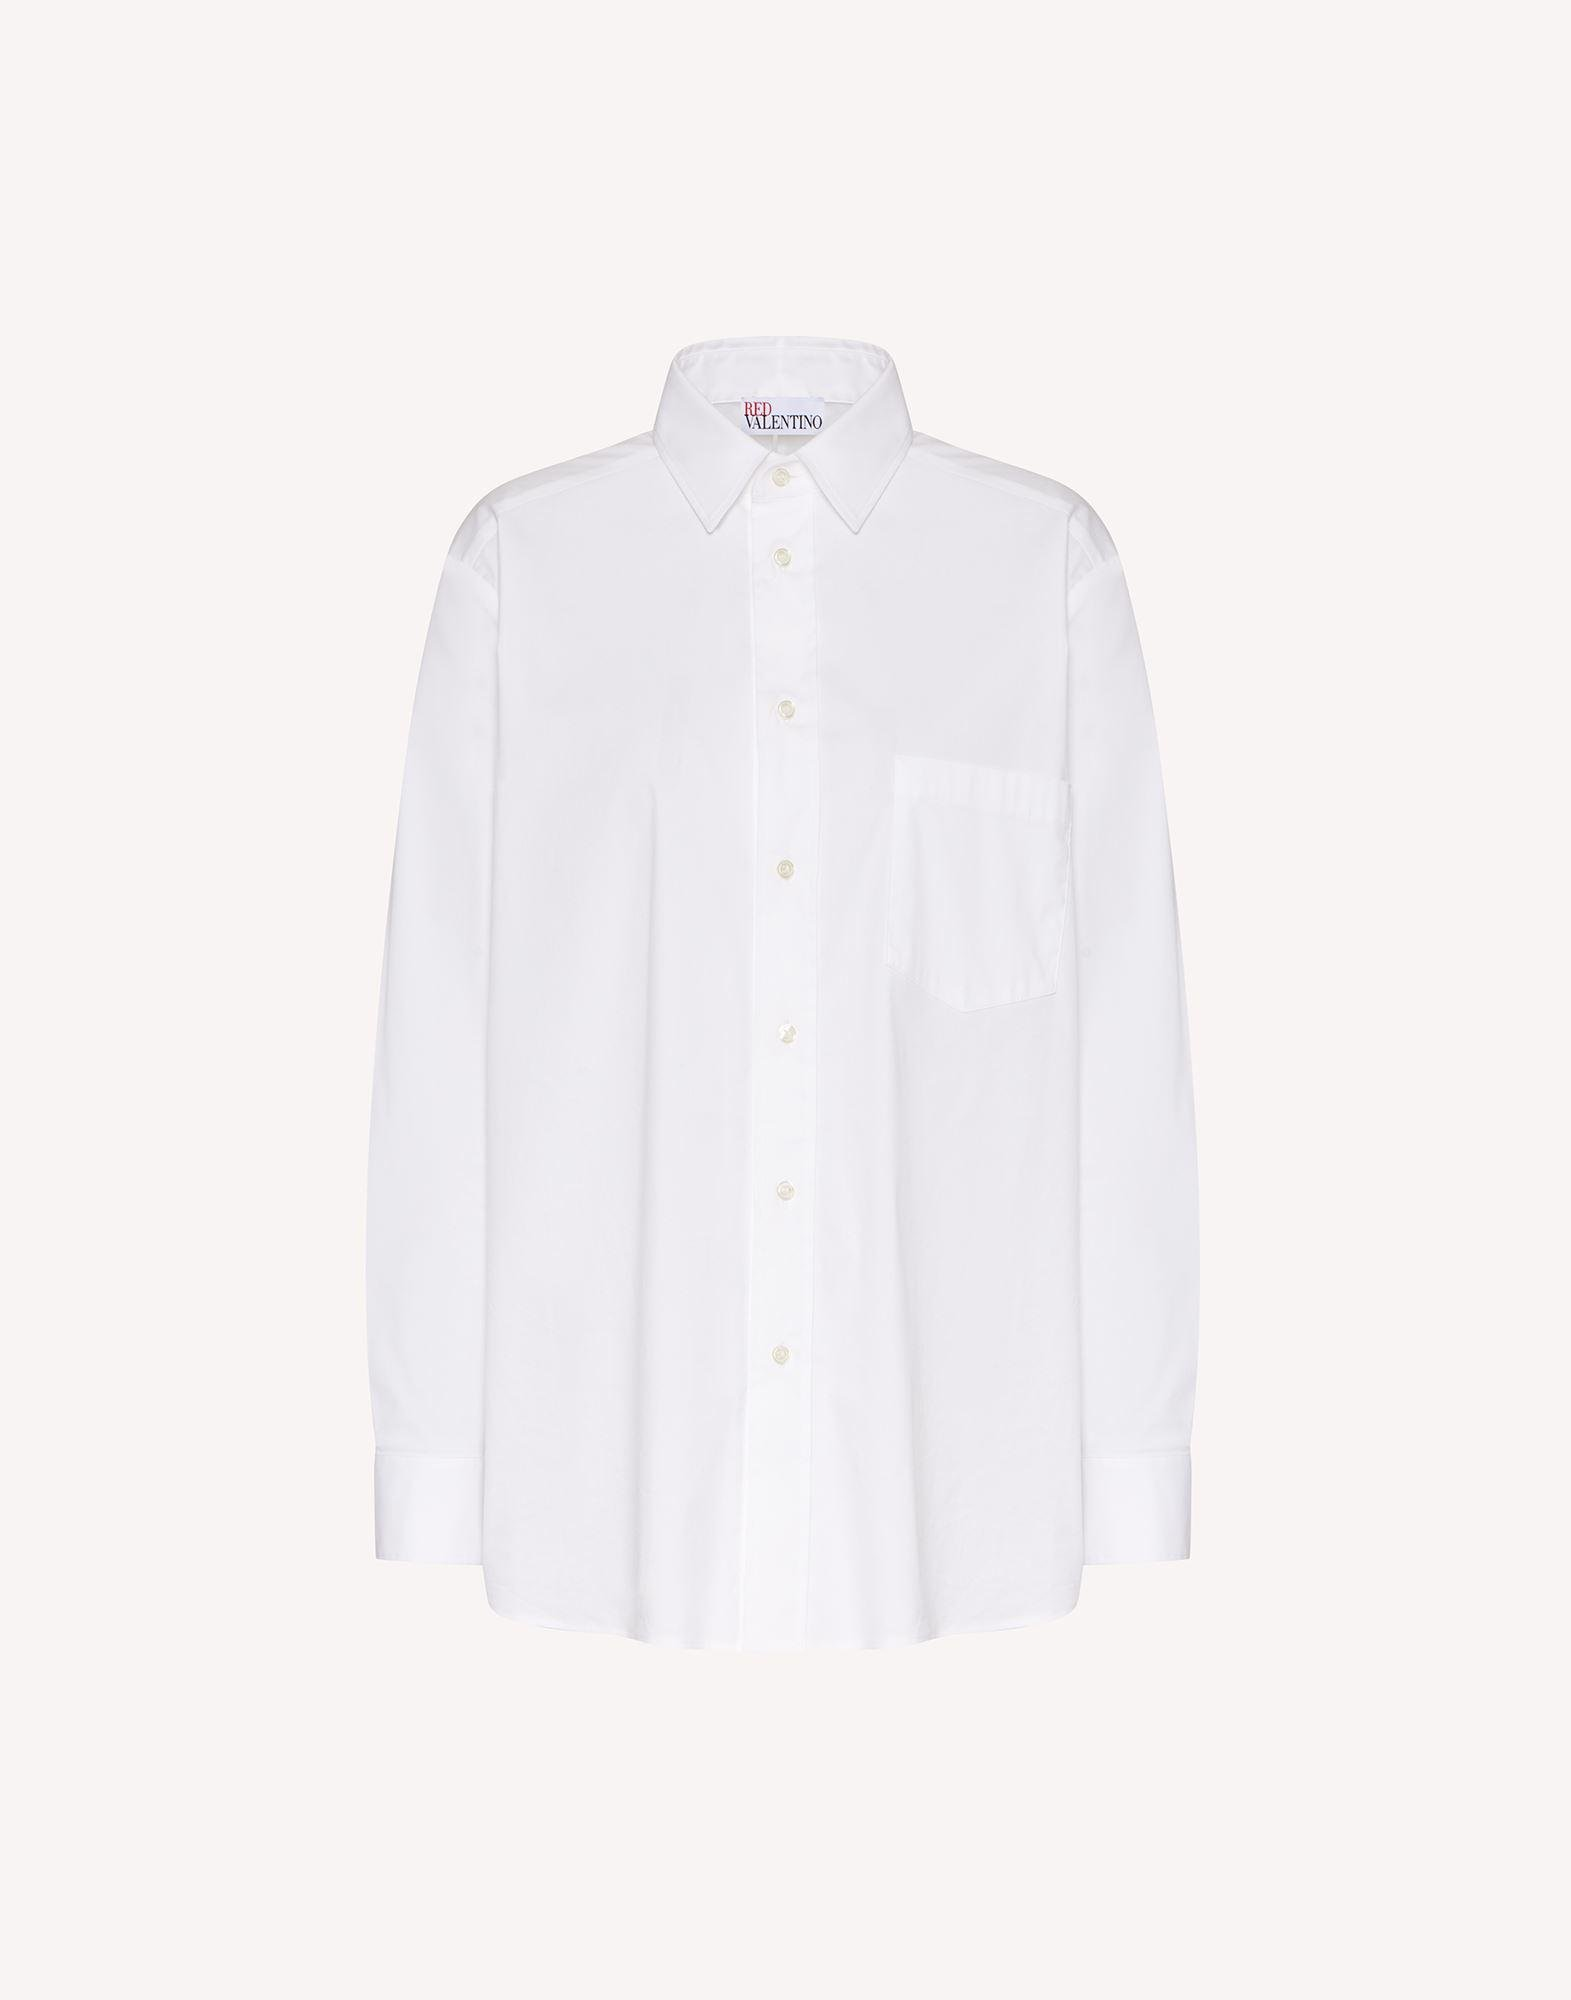 COTTON POPLIN SHIRT WITH BOW DETAILS 4